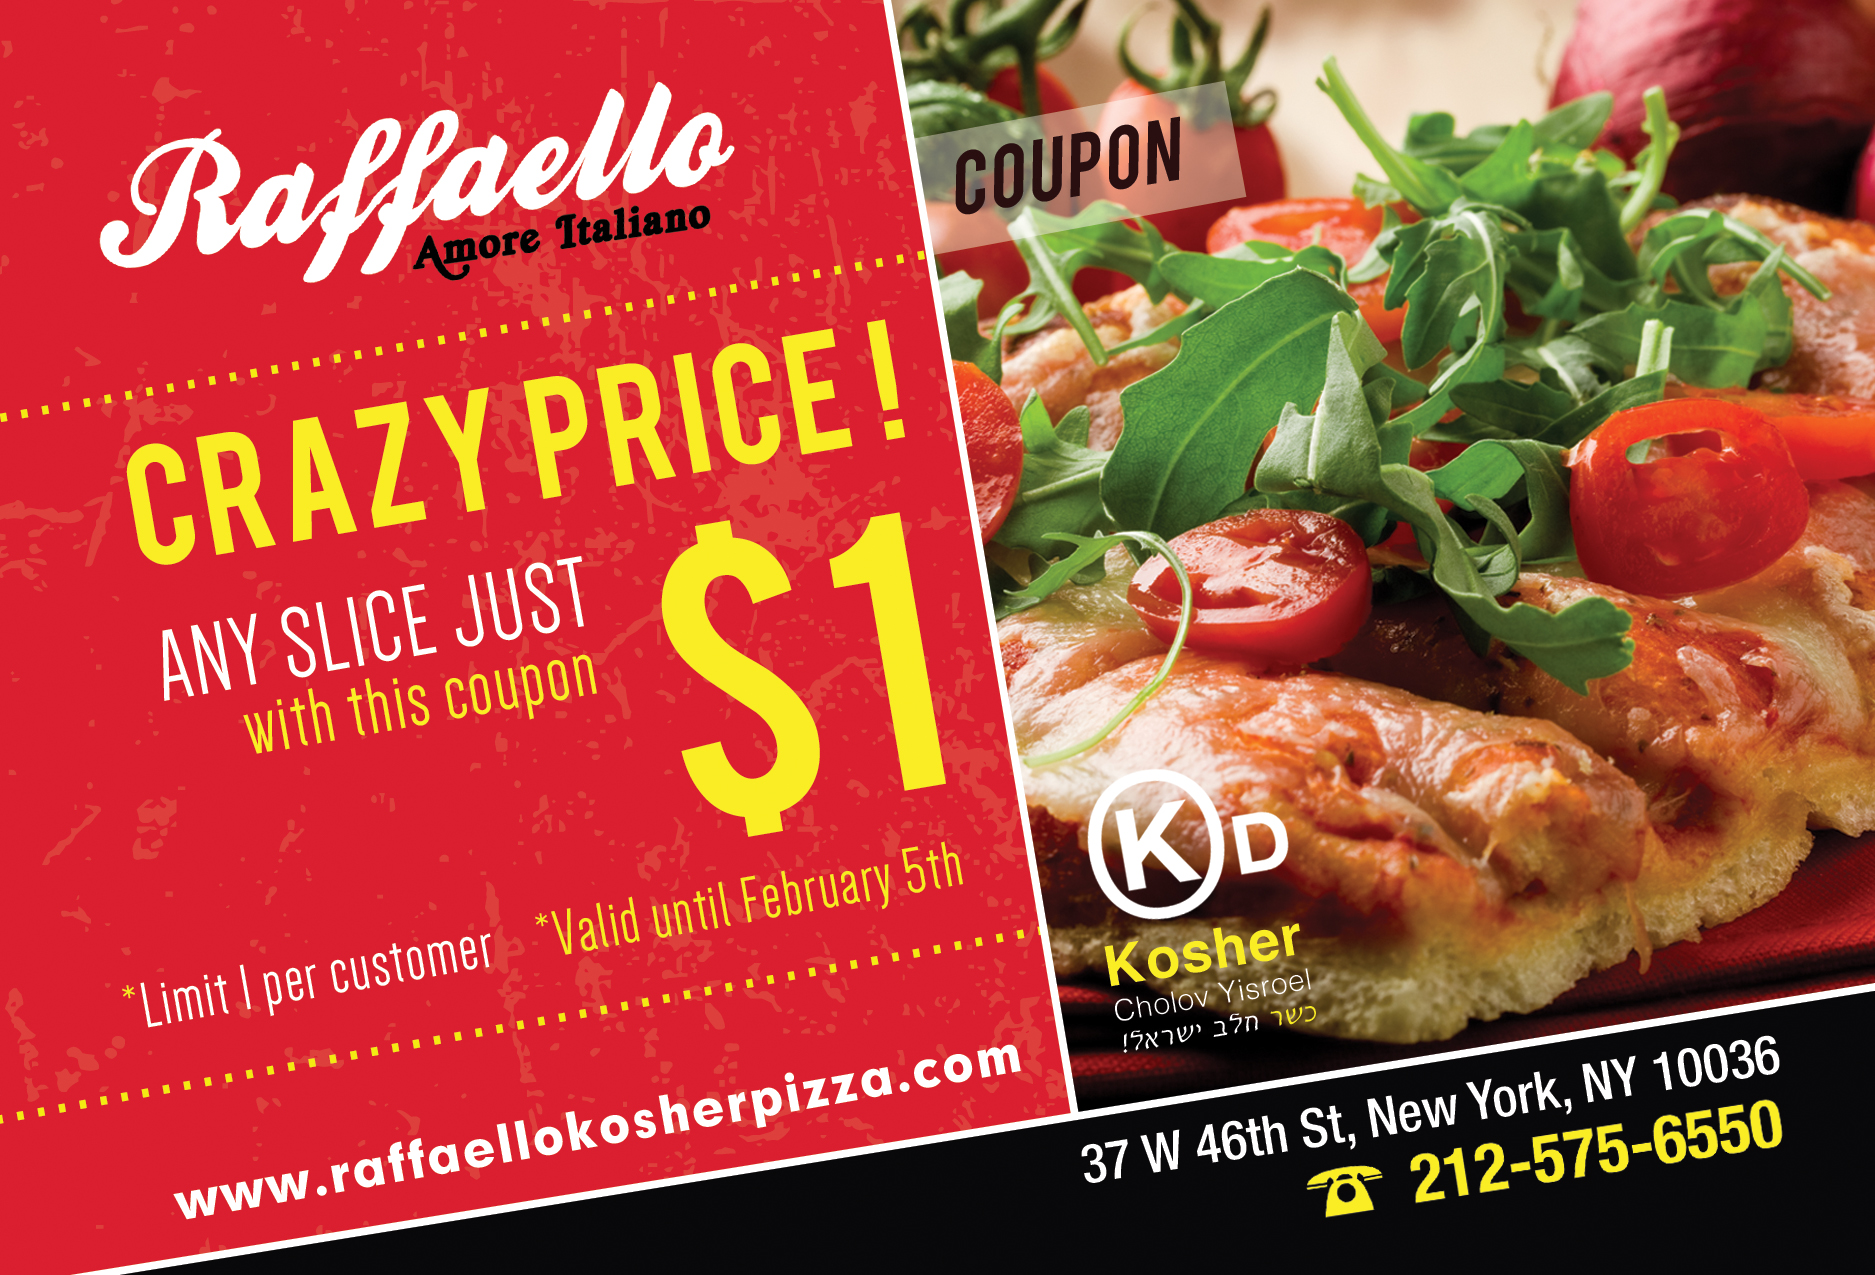 Raffaello NYC kosher coupon